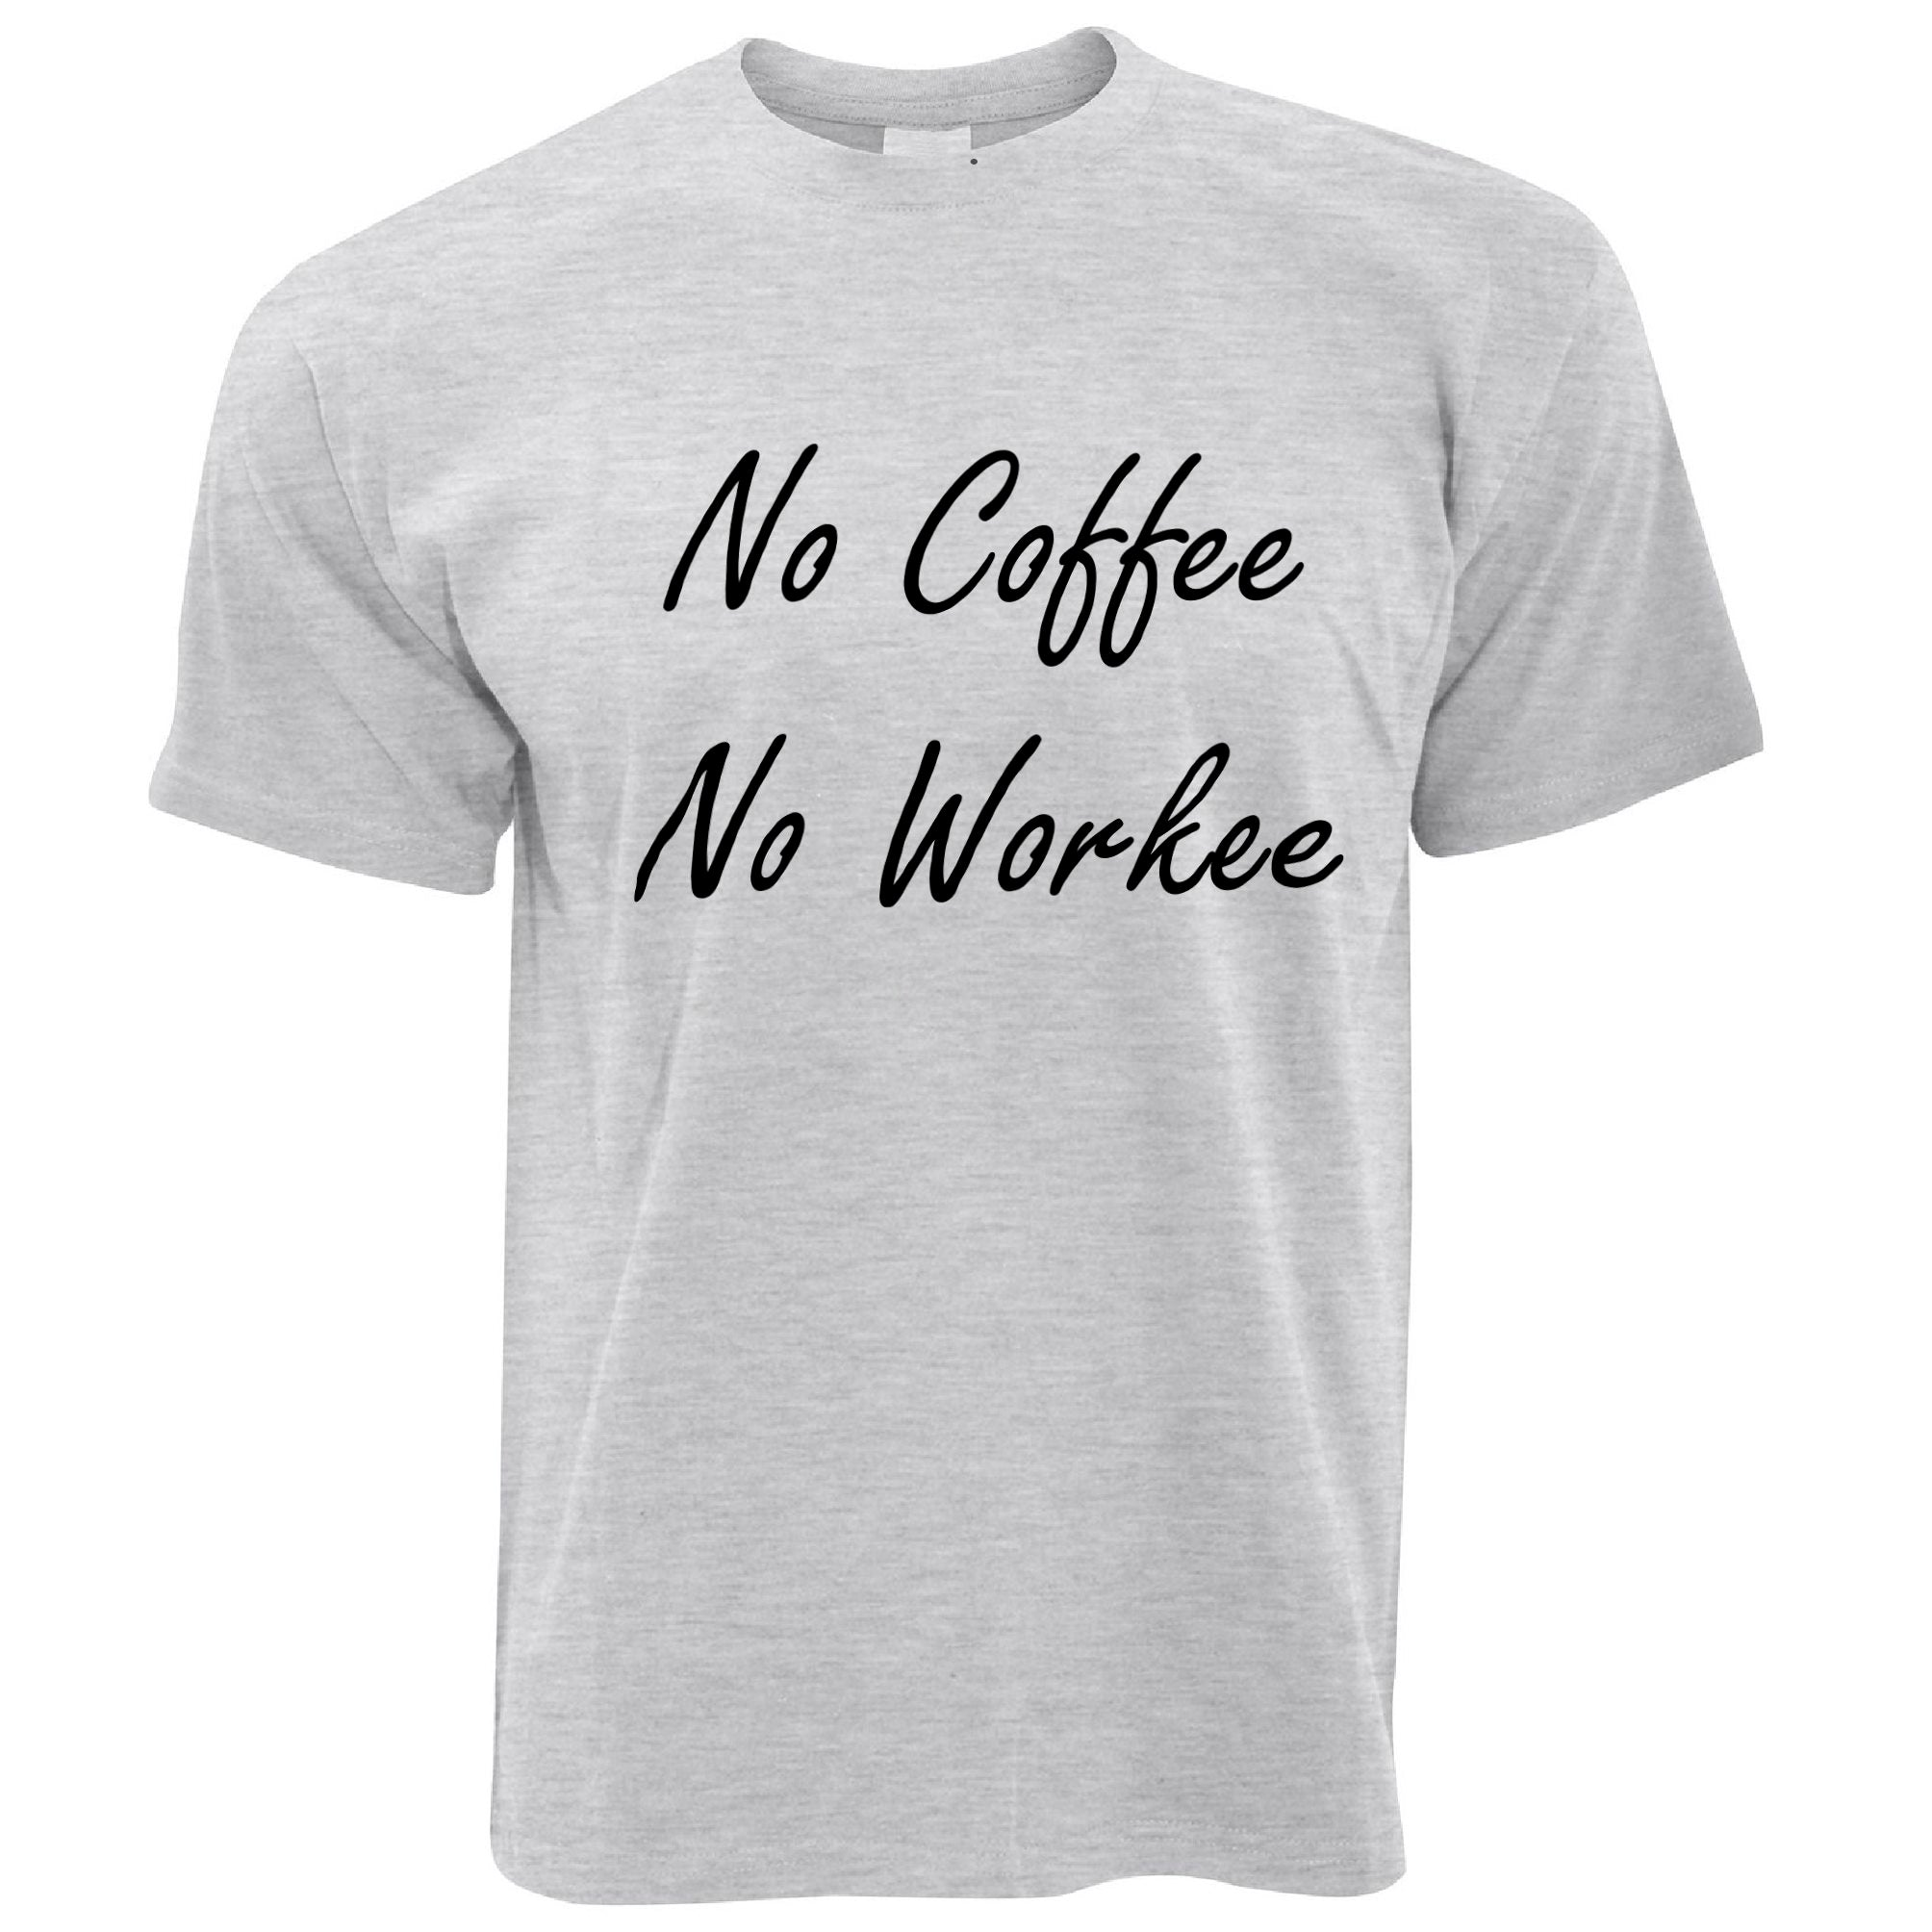 Mens Novelty Morning T Shirt No Coffee, No Workee Slogan Tee